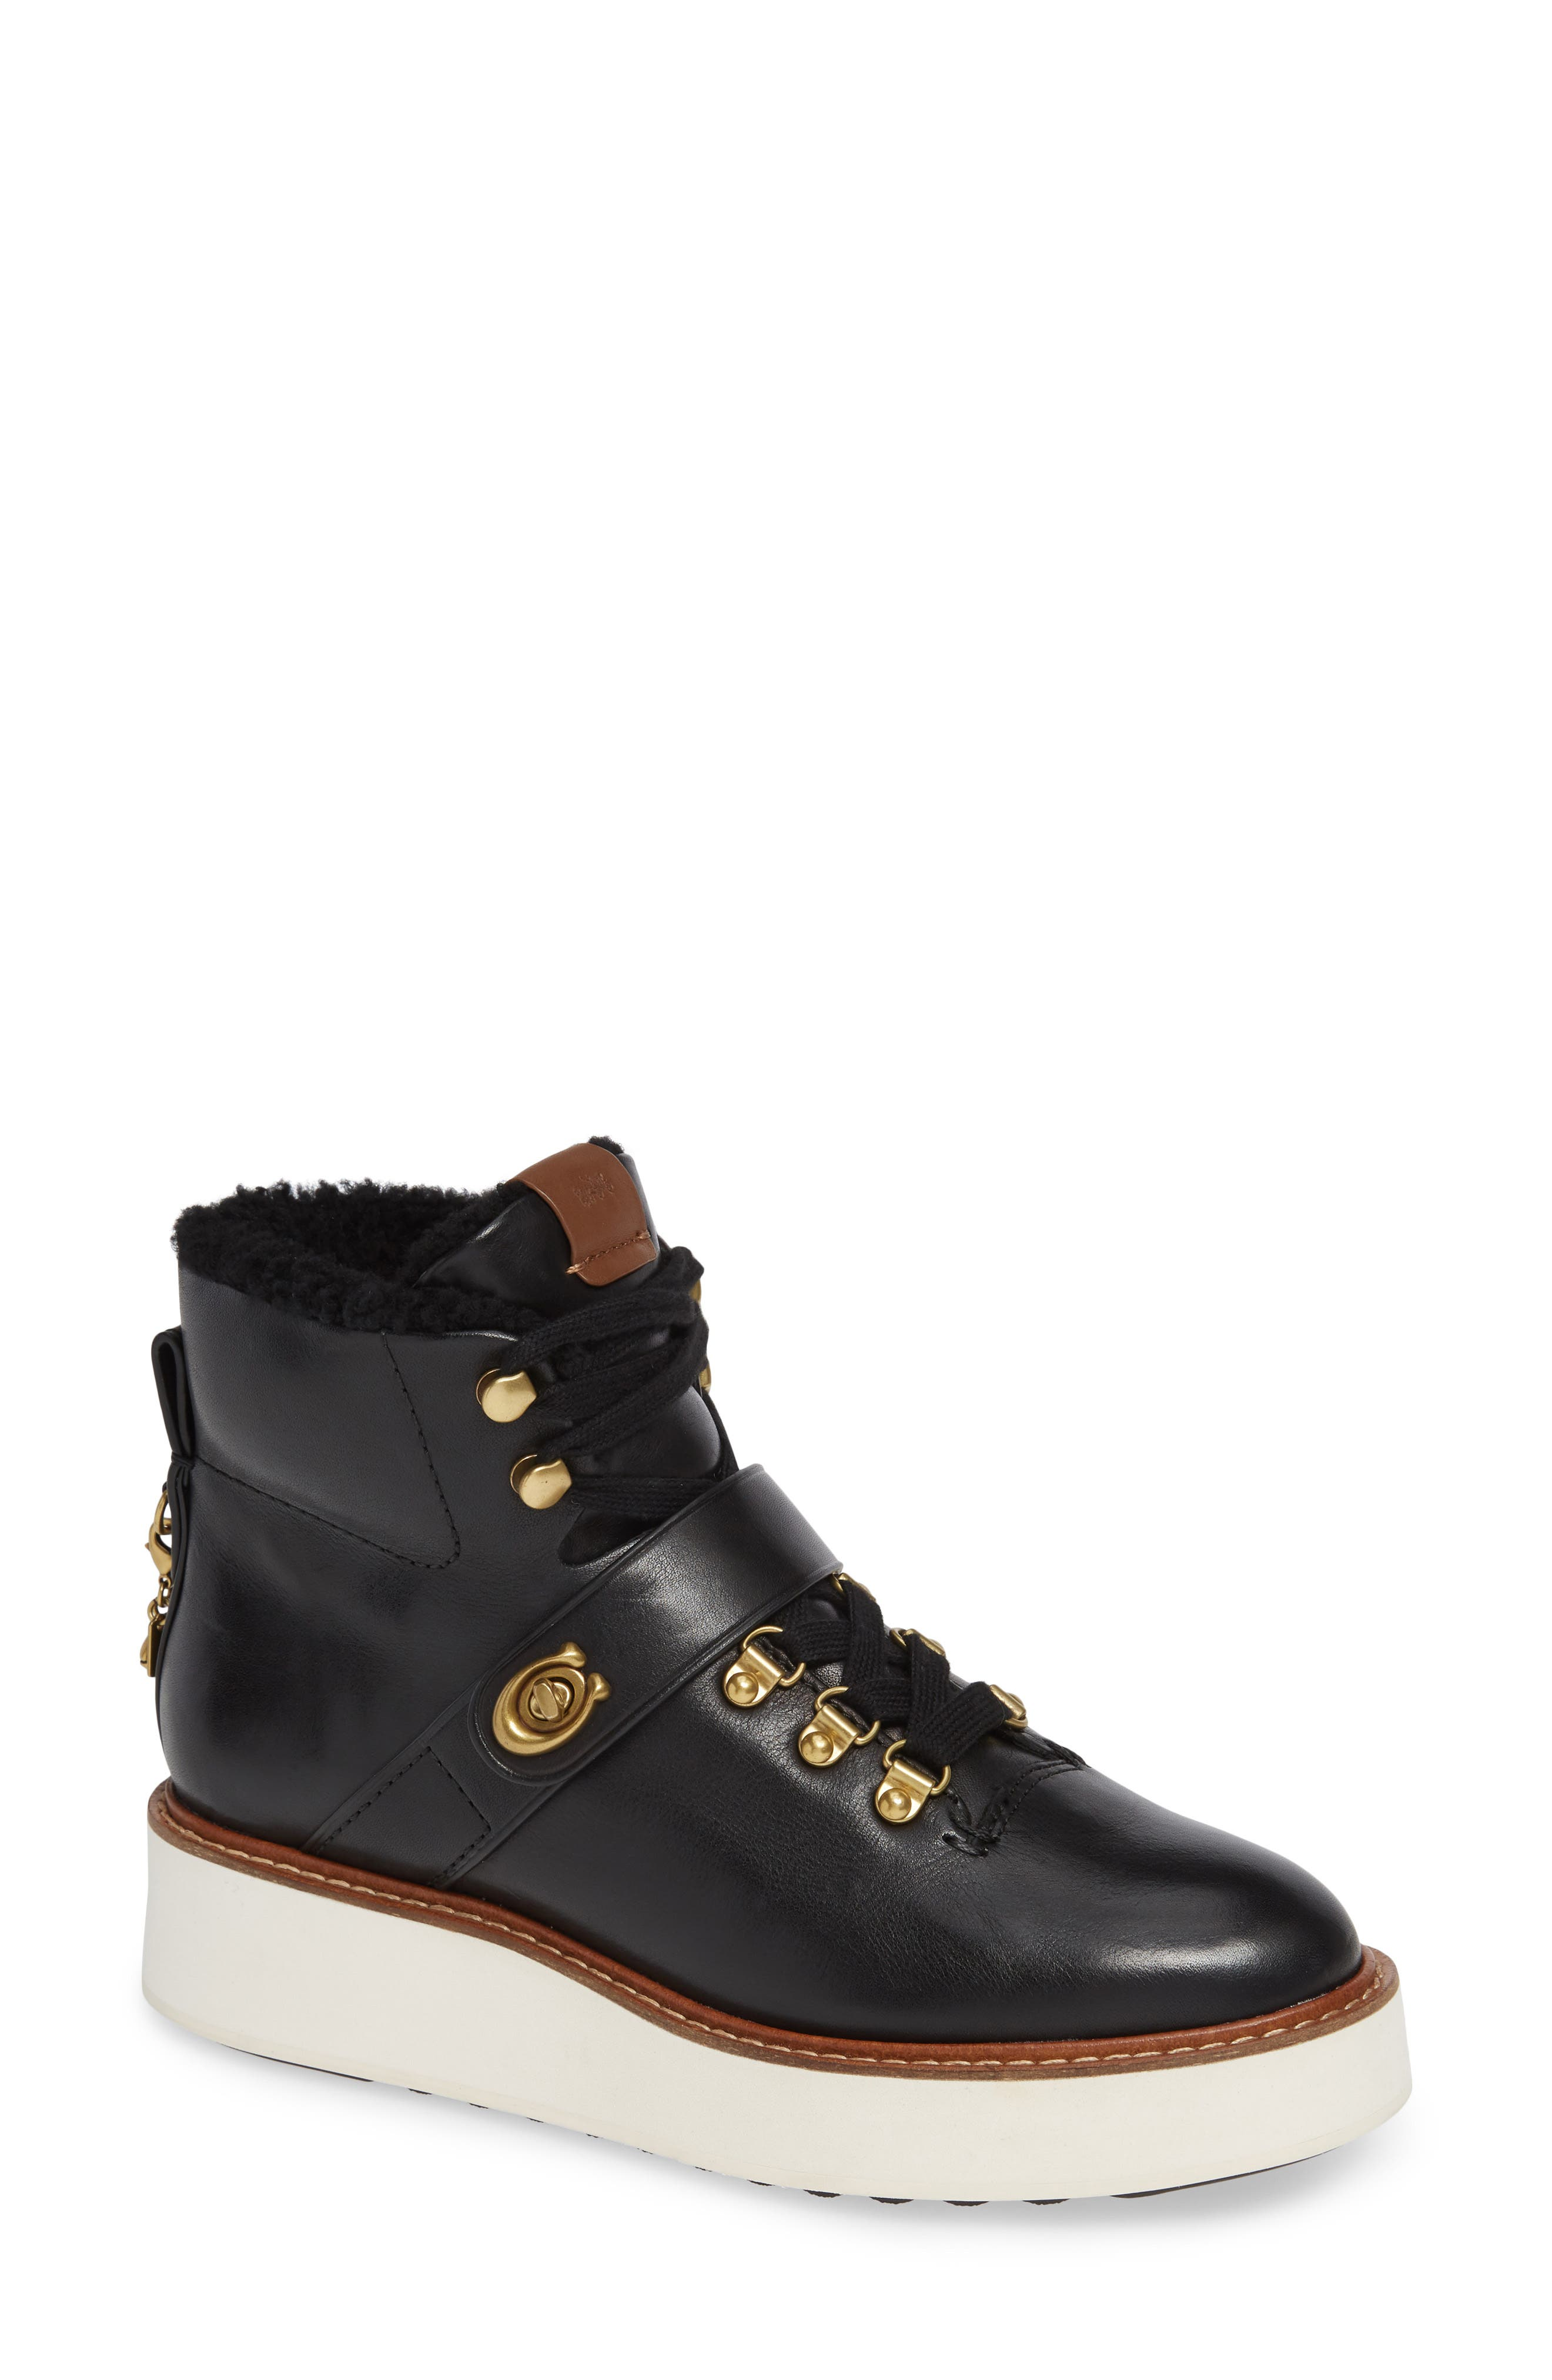 Urban Hiker Genuine Shearling Lined Bootie, Main, color, 001